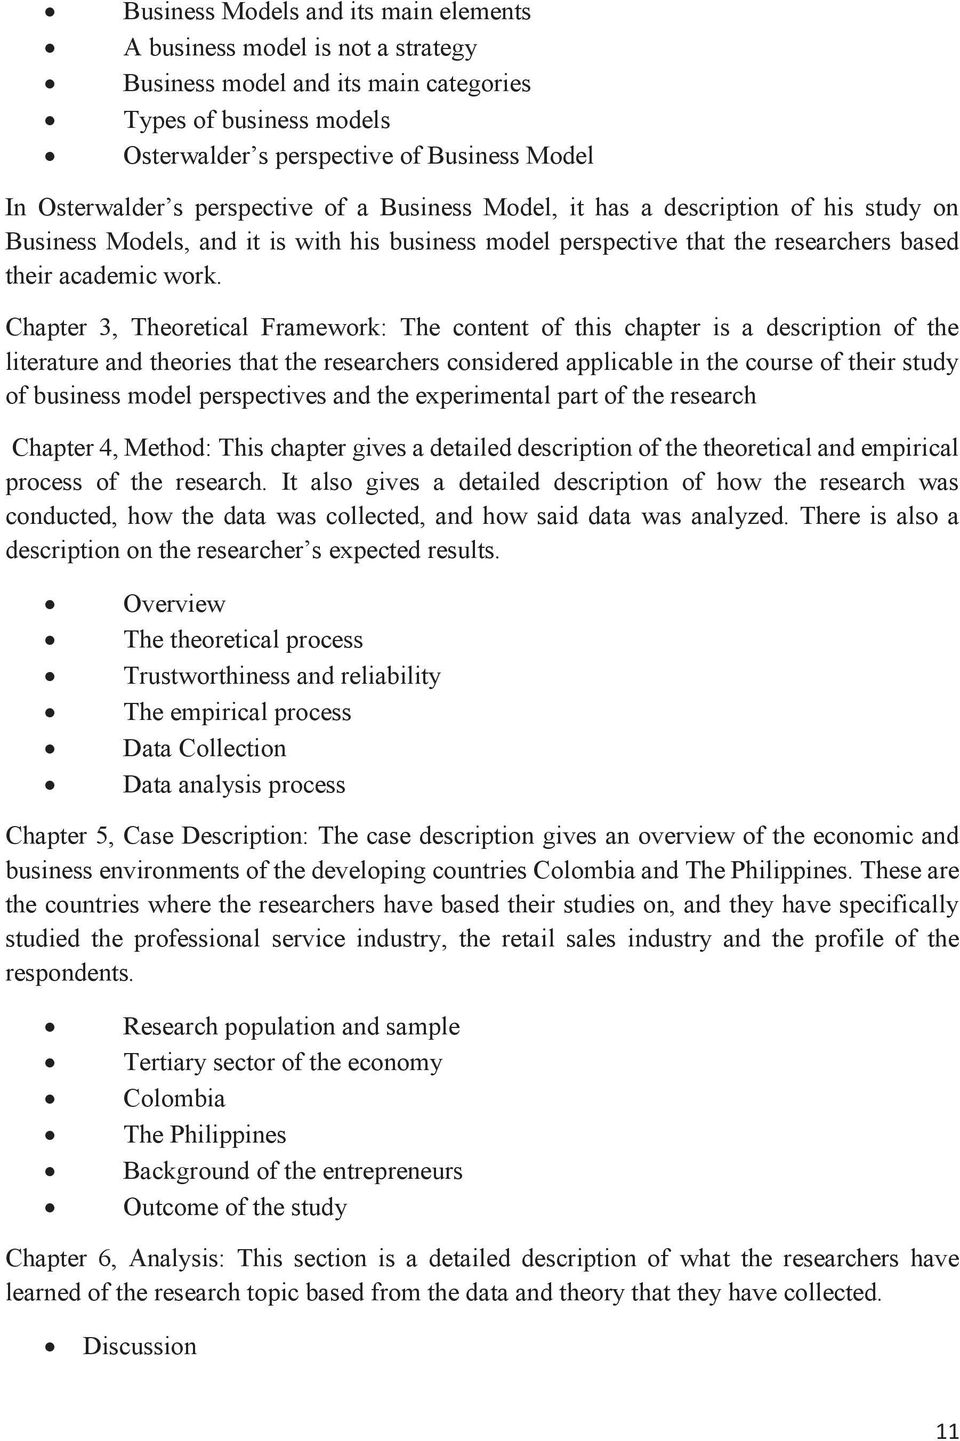 Chapter 3, Theoretical Framework: The content of this chapter is a description of the literature and theories that the researchers considered applicable in the course of their study of business model